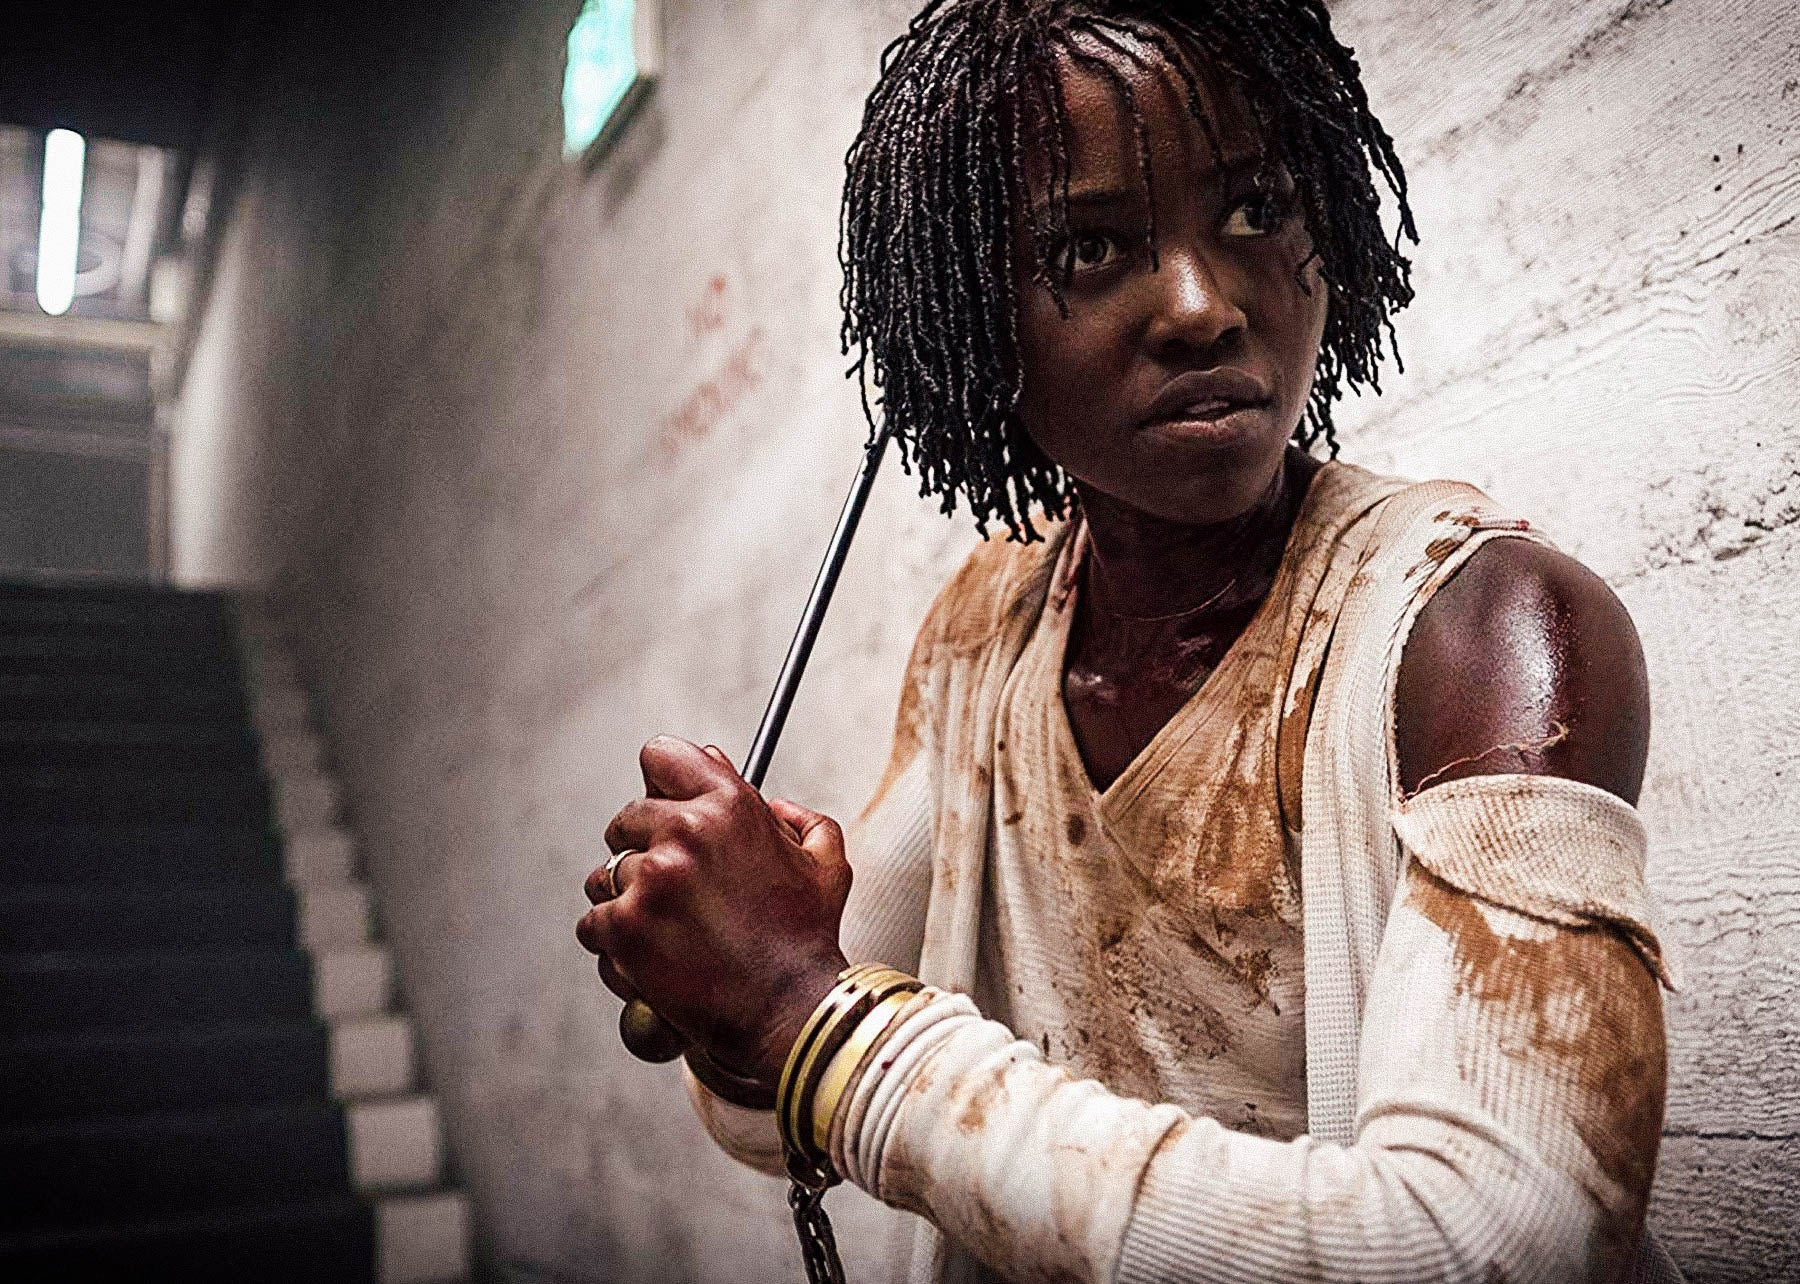 In a still from Us, Lupita Nyong'o stands at the foot of a set of stairs in a deserted hallway. She is wearing dirty clothing and brandishing a metal rod as a weapon.